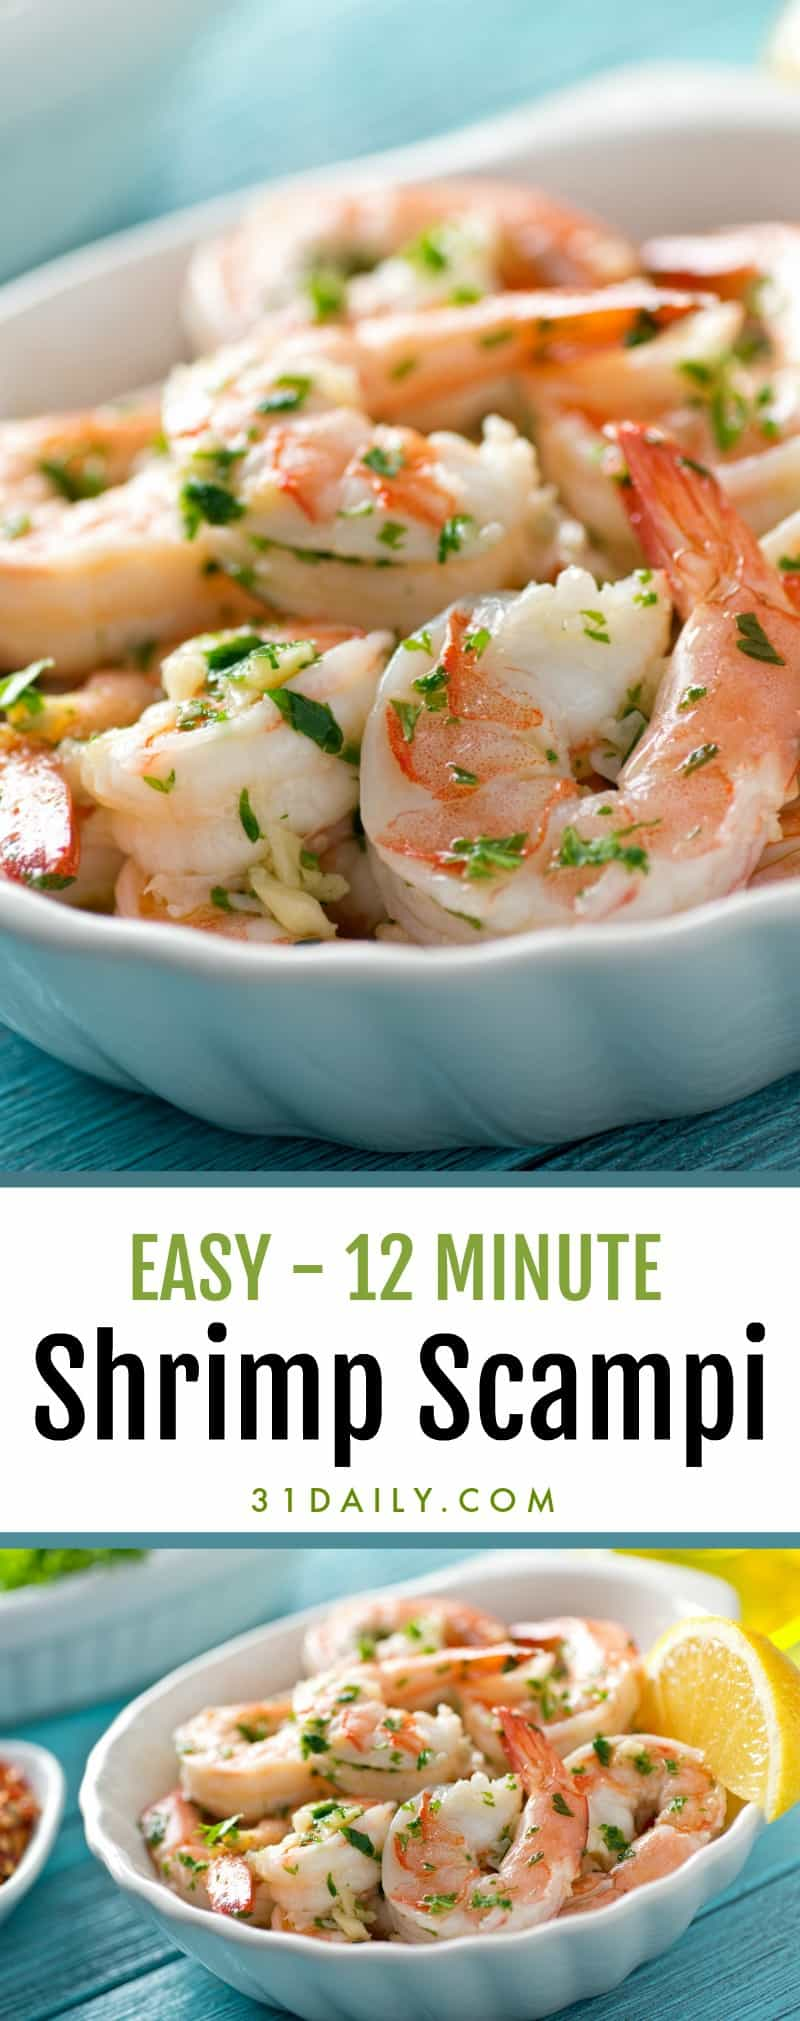 Easy Shrimp Scampi with Garlic and Lemon | 31Daily.com